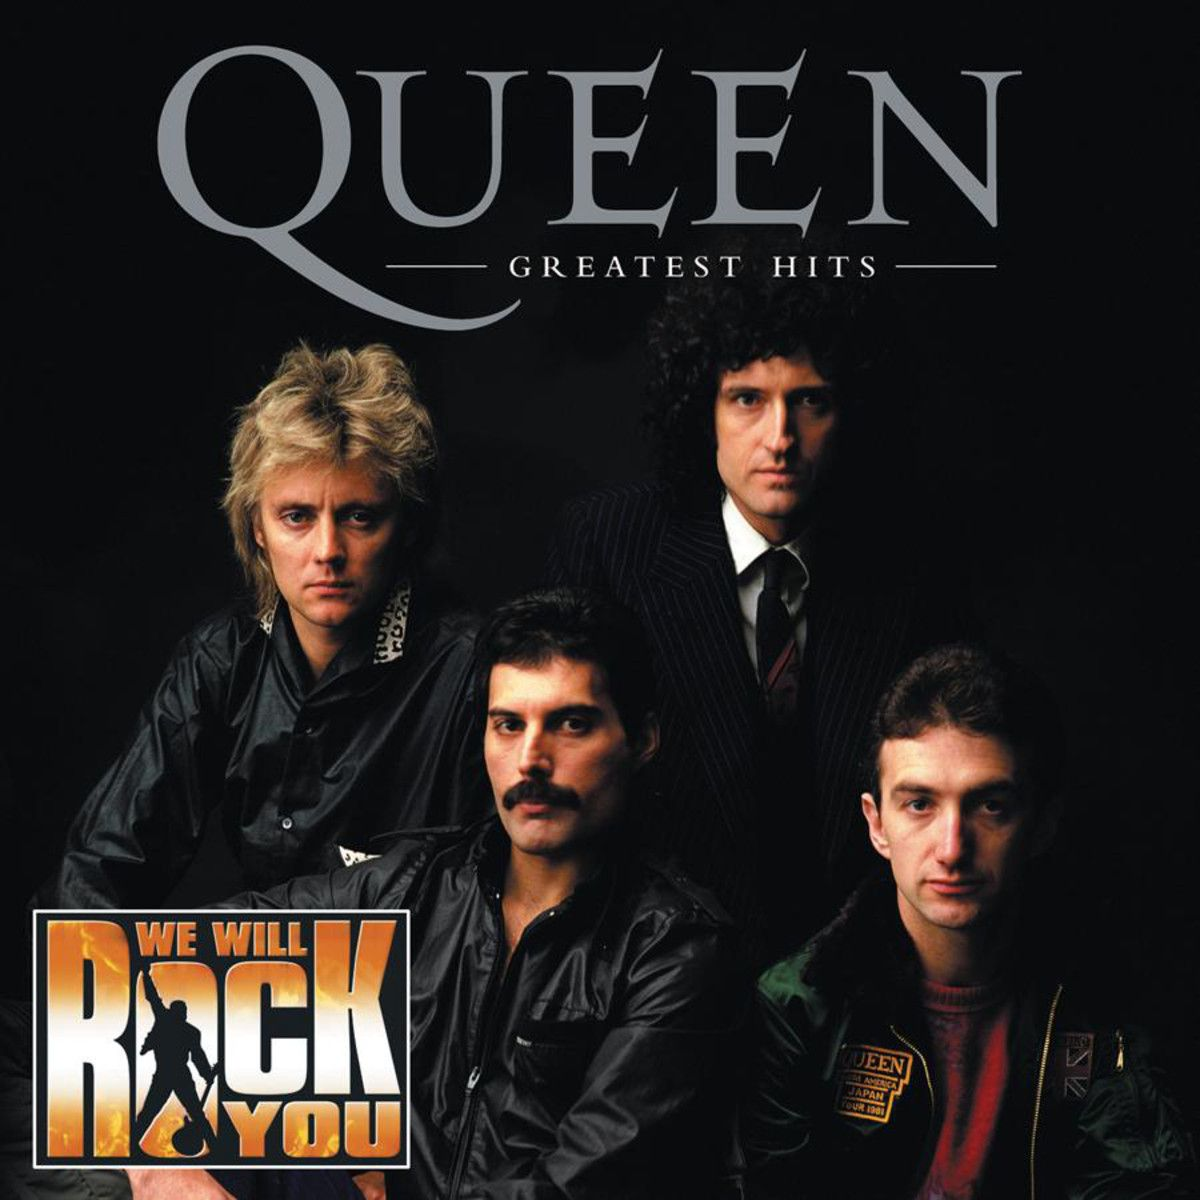 Queen - Greatest Hits album cover